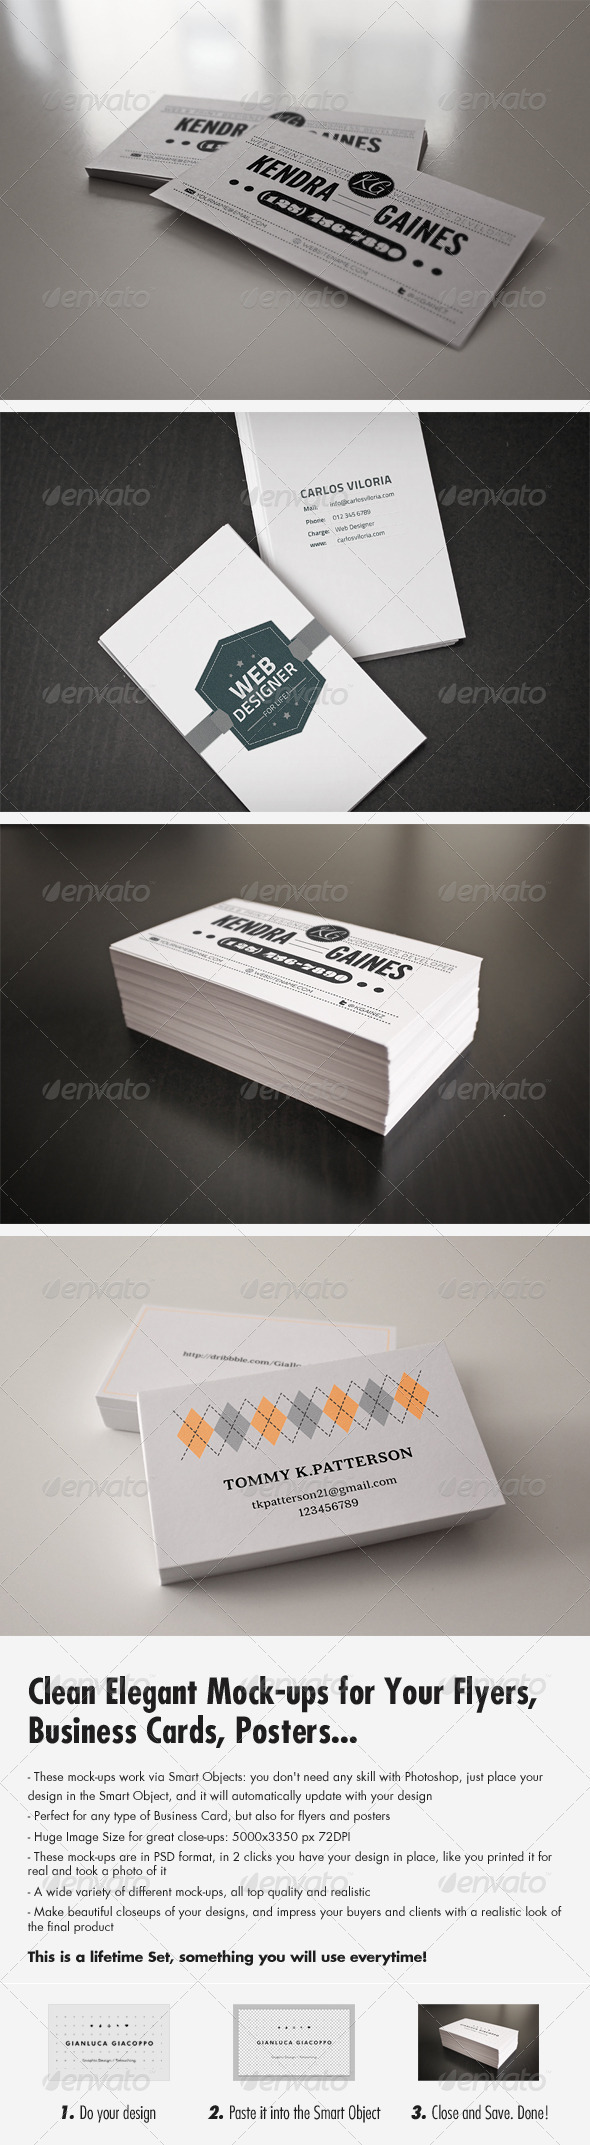 Flyer Business Card Clean Realistic Mockups Set 1